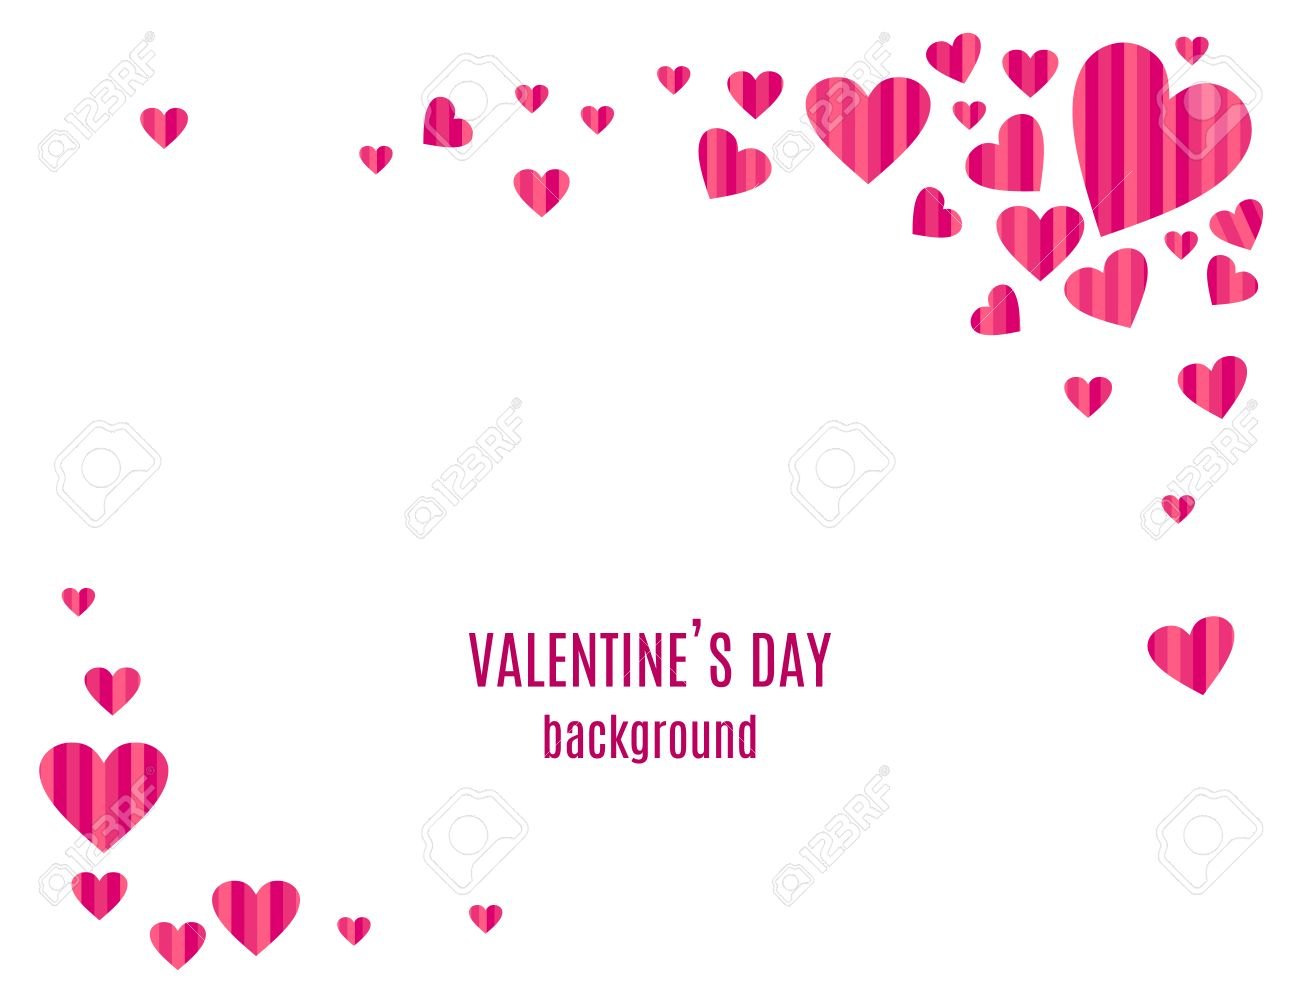 Abstract Love Background For Valentines Day Design Stripped